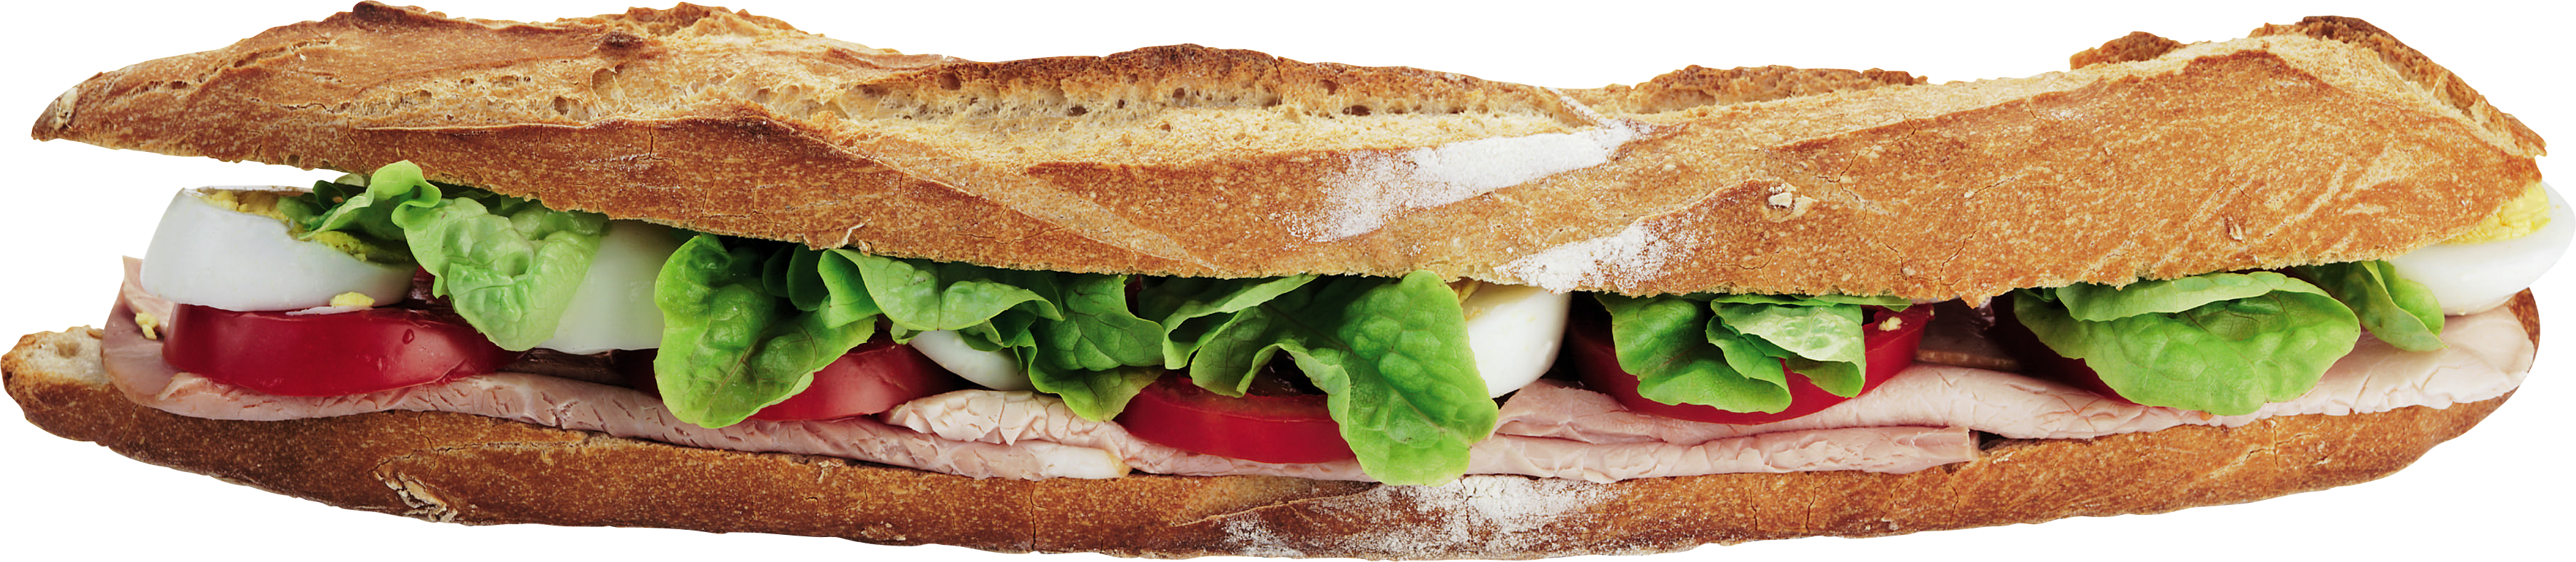 Baguette Sandwhich PNG Image